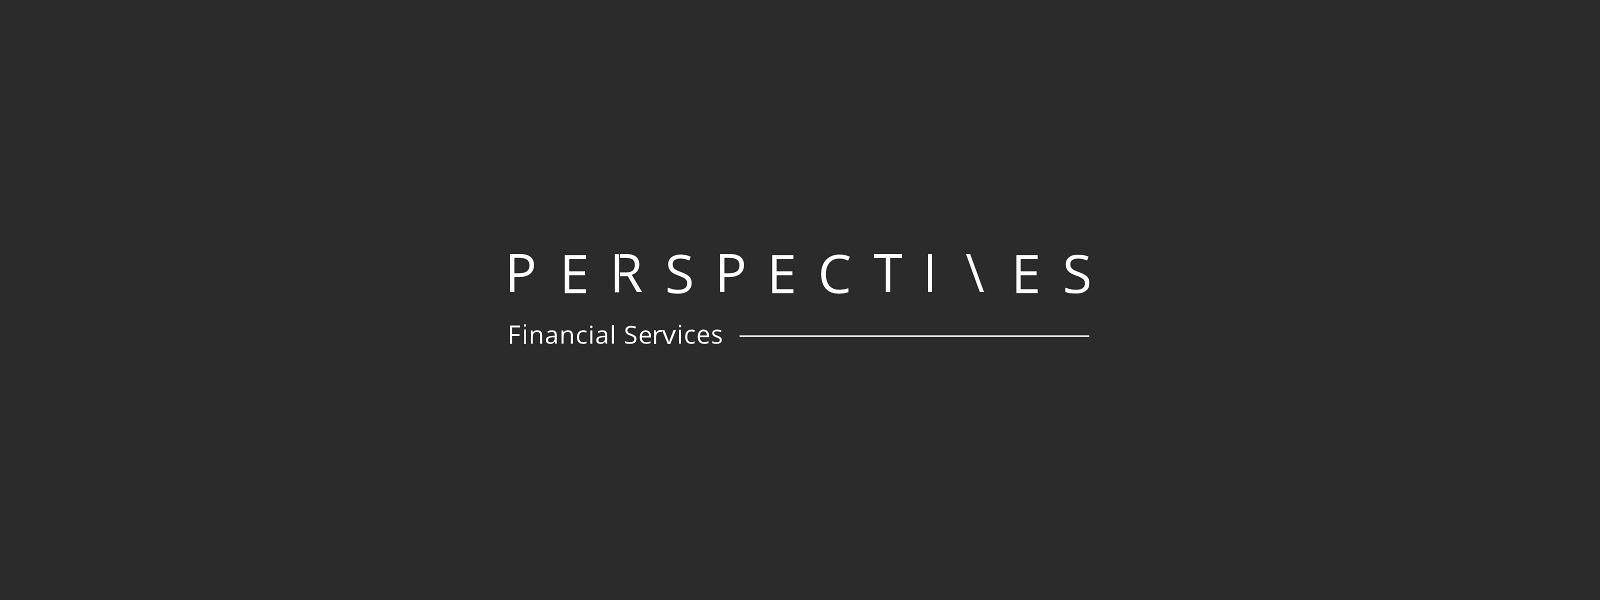 Financial Services Perspectives by ThoughtWorks